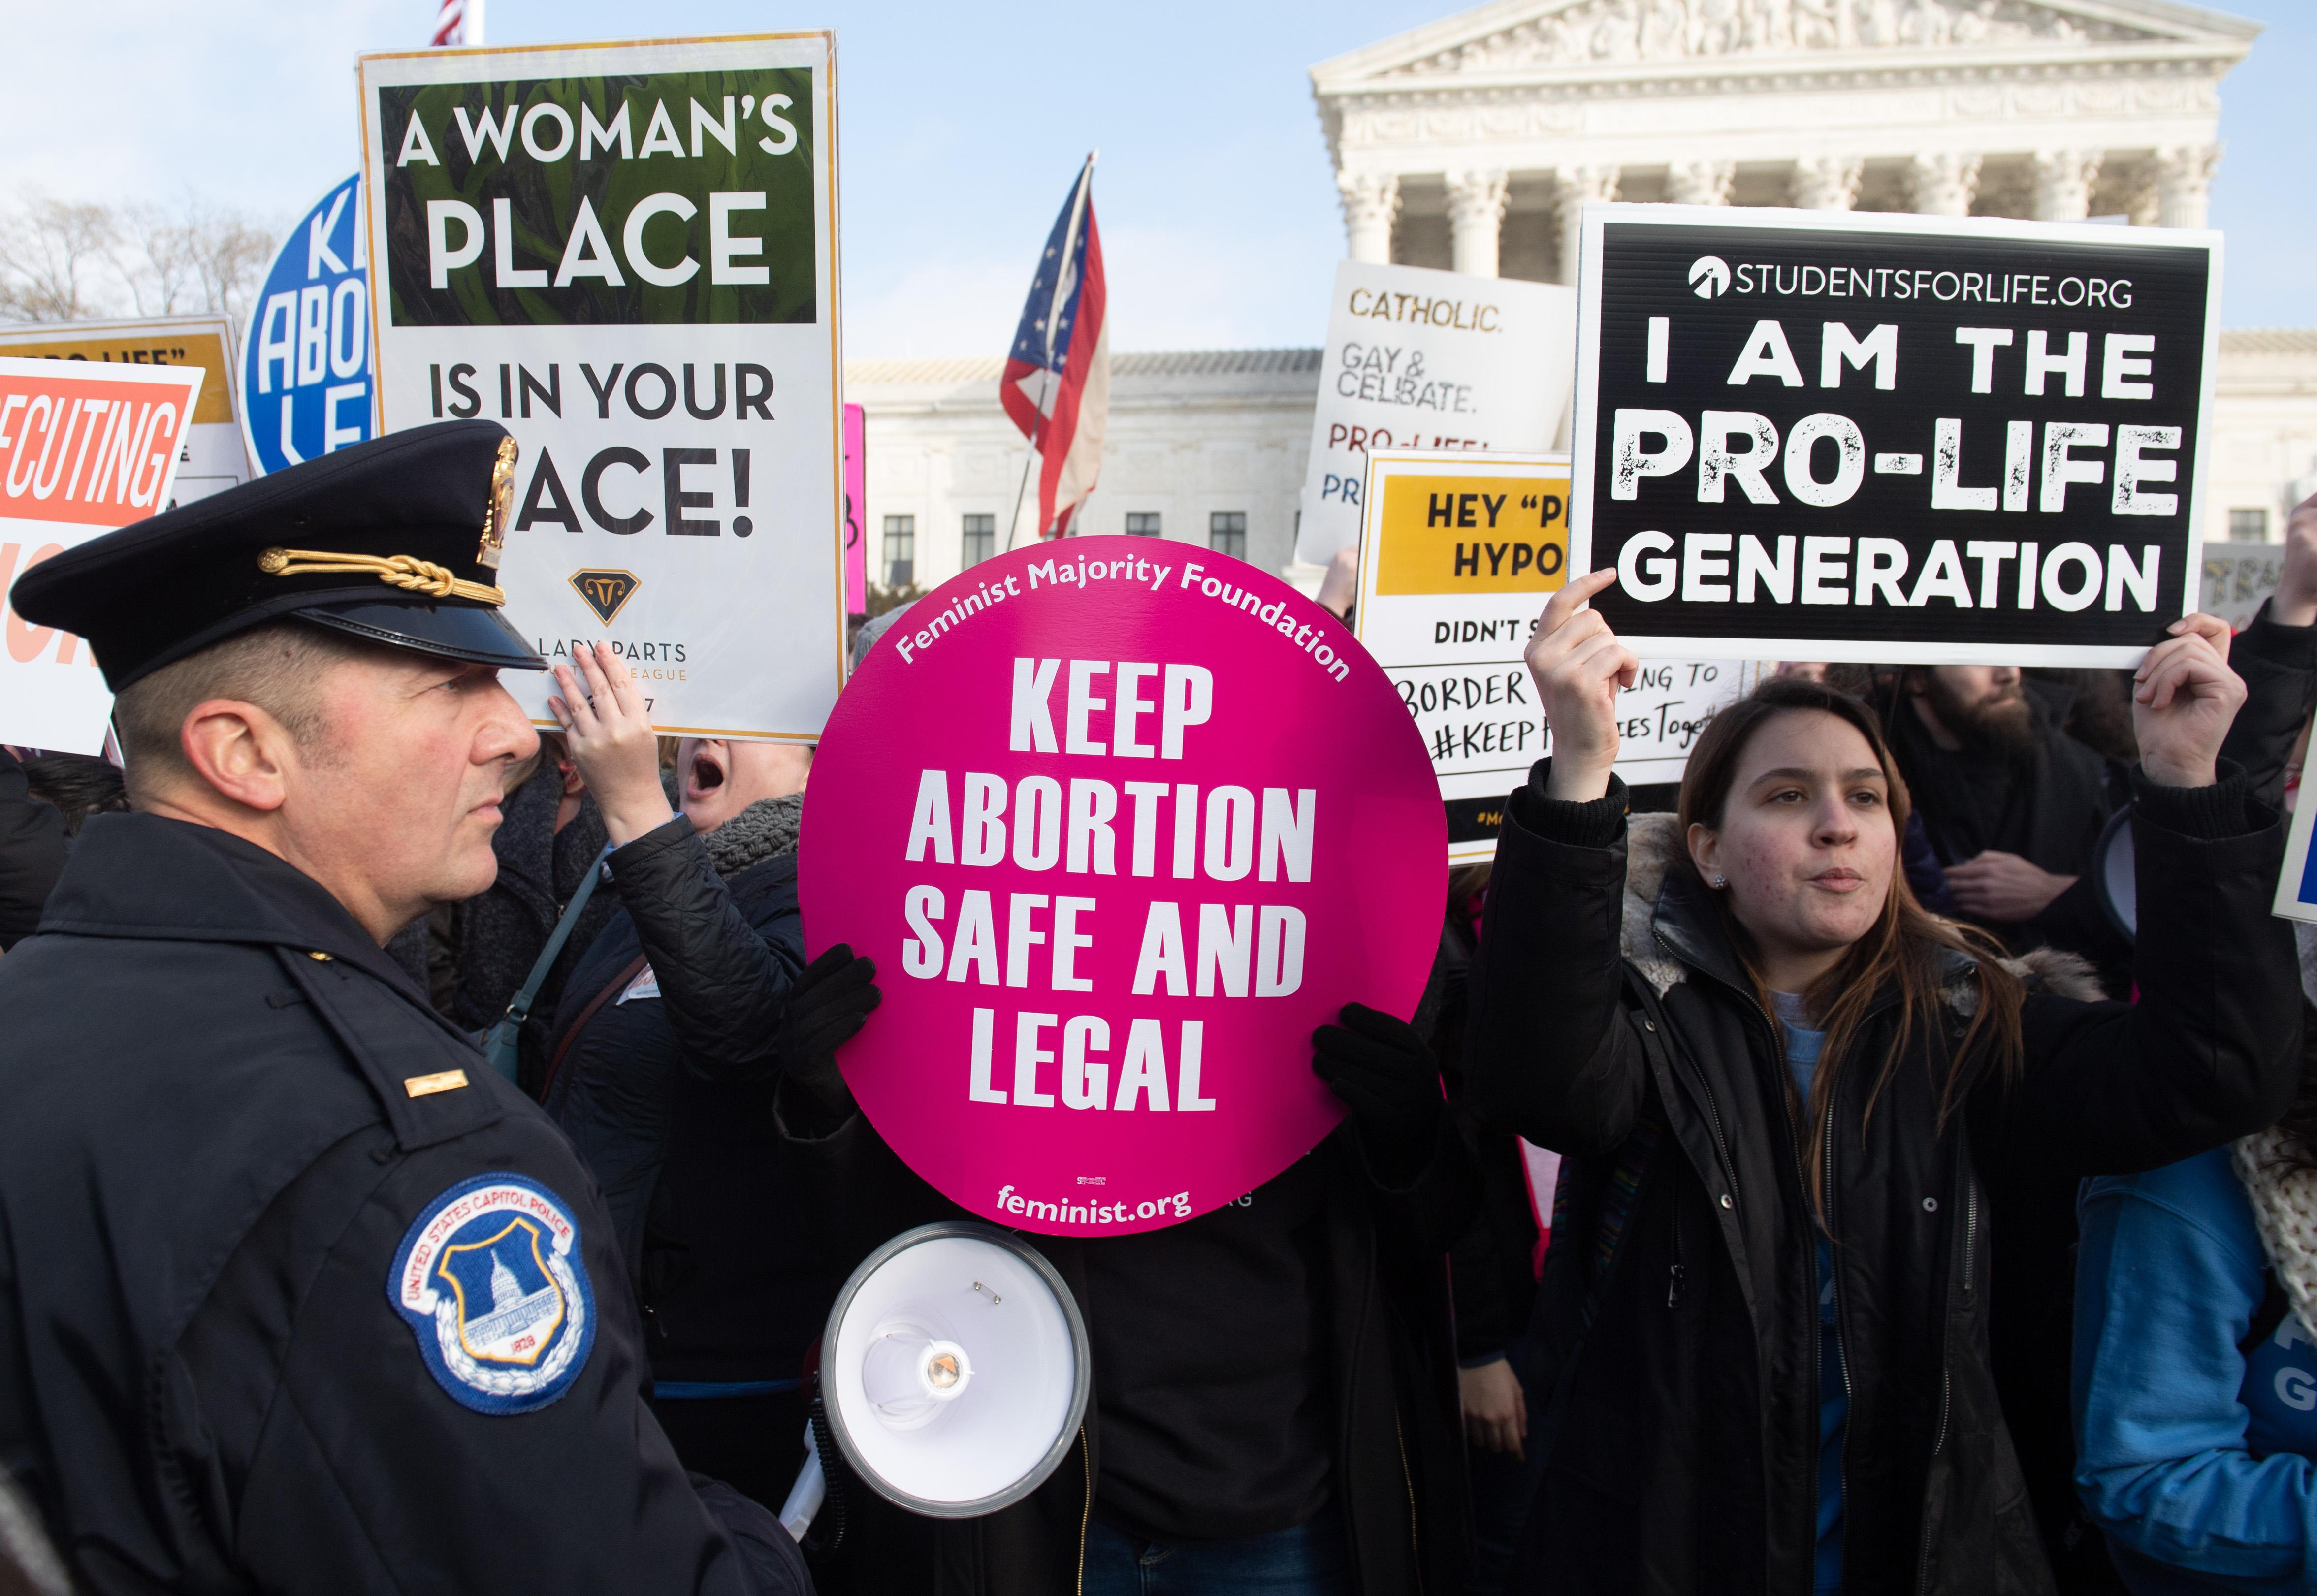 Pro-choice activists hold signs in response to the anti-abortion March for Life outside the U.S. Supreme Court in Washington, D.C., on January 18, 2019.